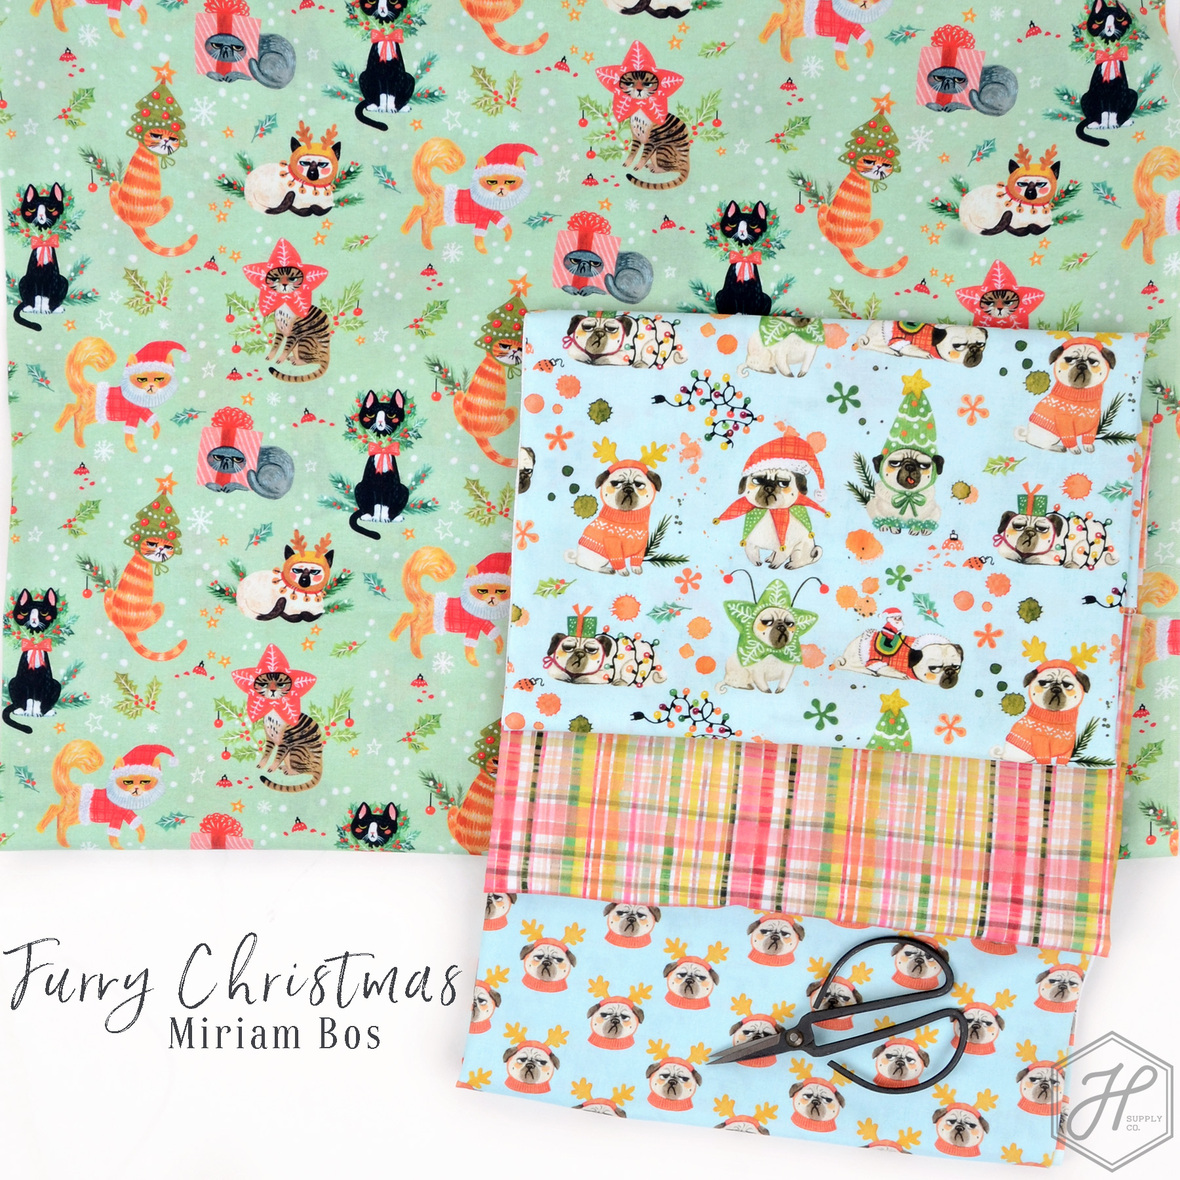 Furry-Christmas-fabric-Miriam-Bos-for-Dear-Stella-at-Hawthorne-Supply-Co